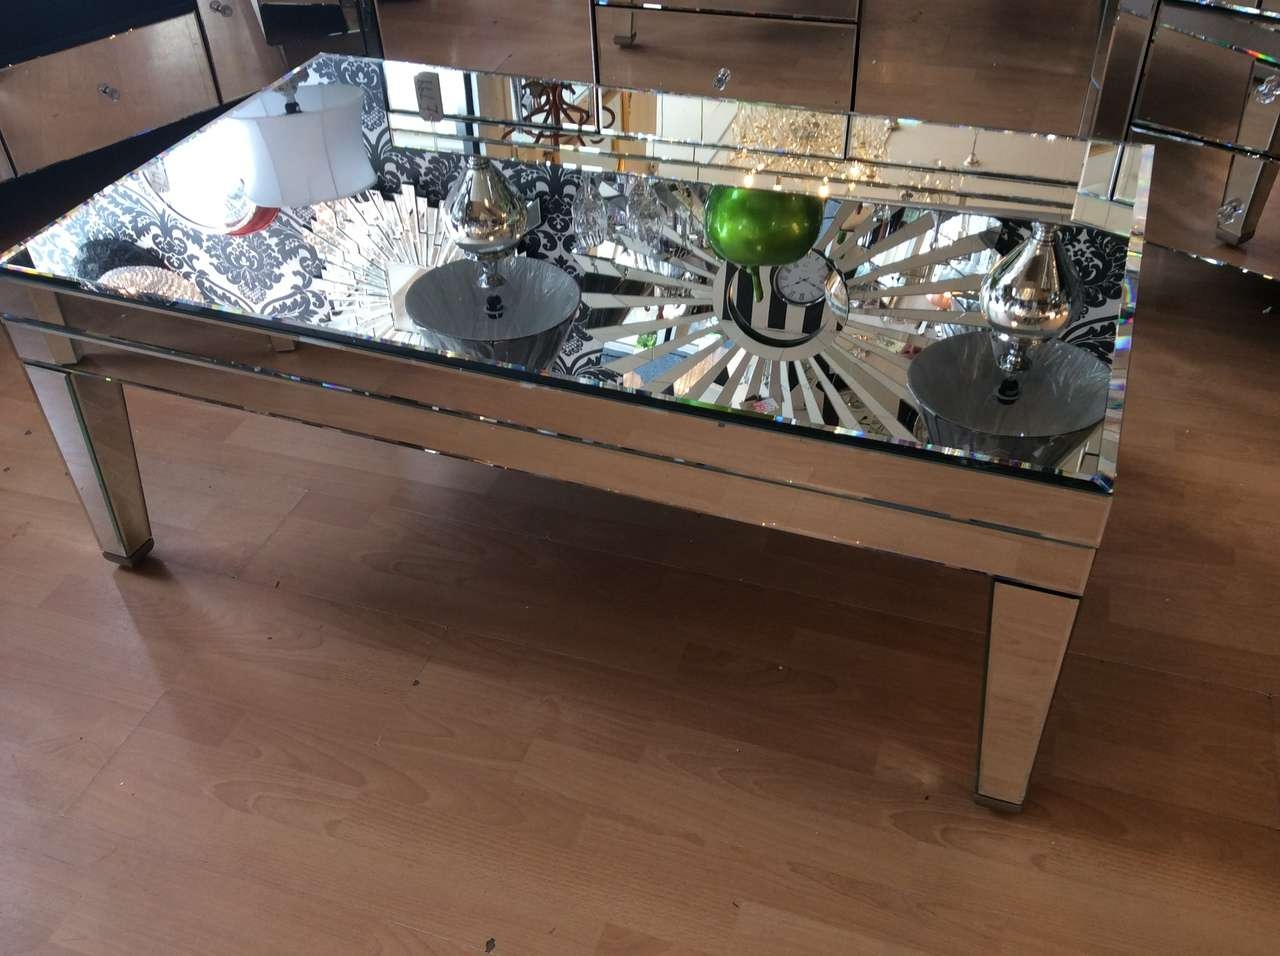 Most Recently Released Vintage Mirror Coffee Tables Within Mirrored Coffee Table With Cool Designs That Go Beyond The Rules (View 14 of 20)